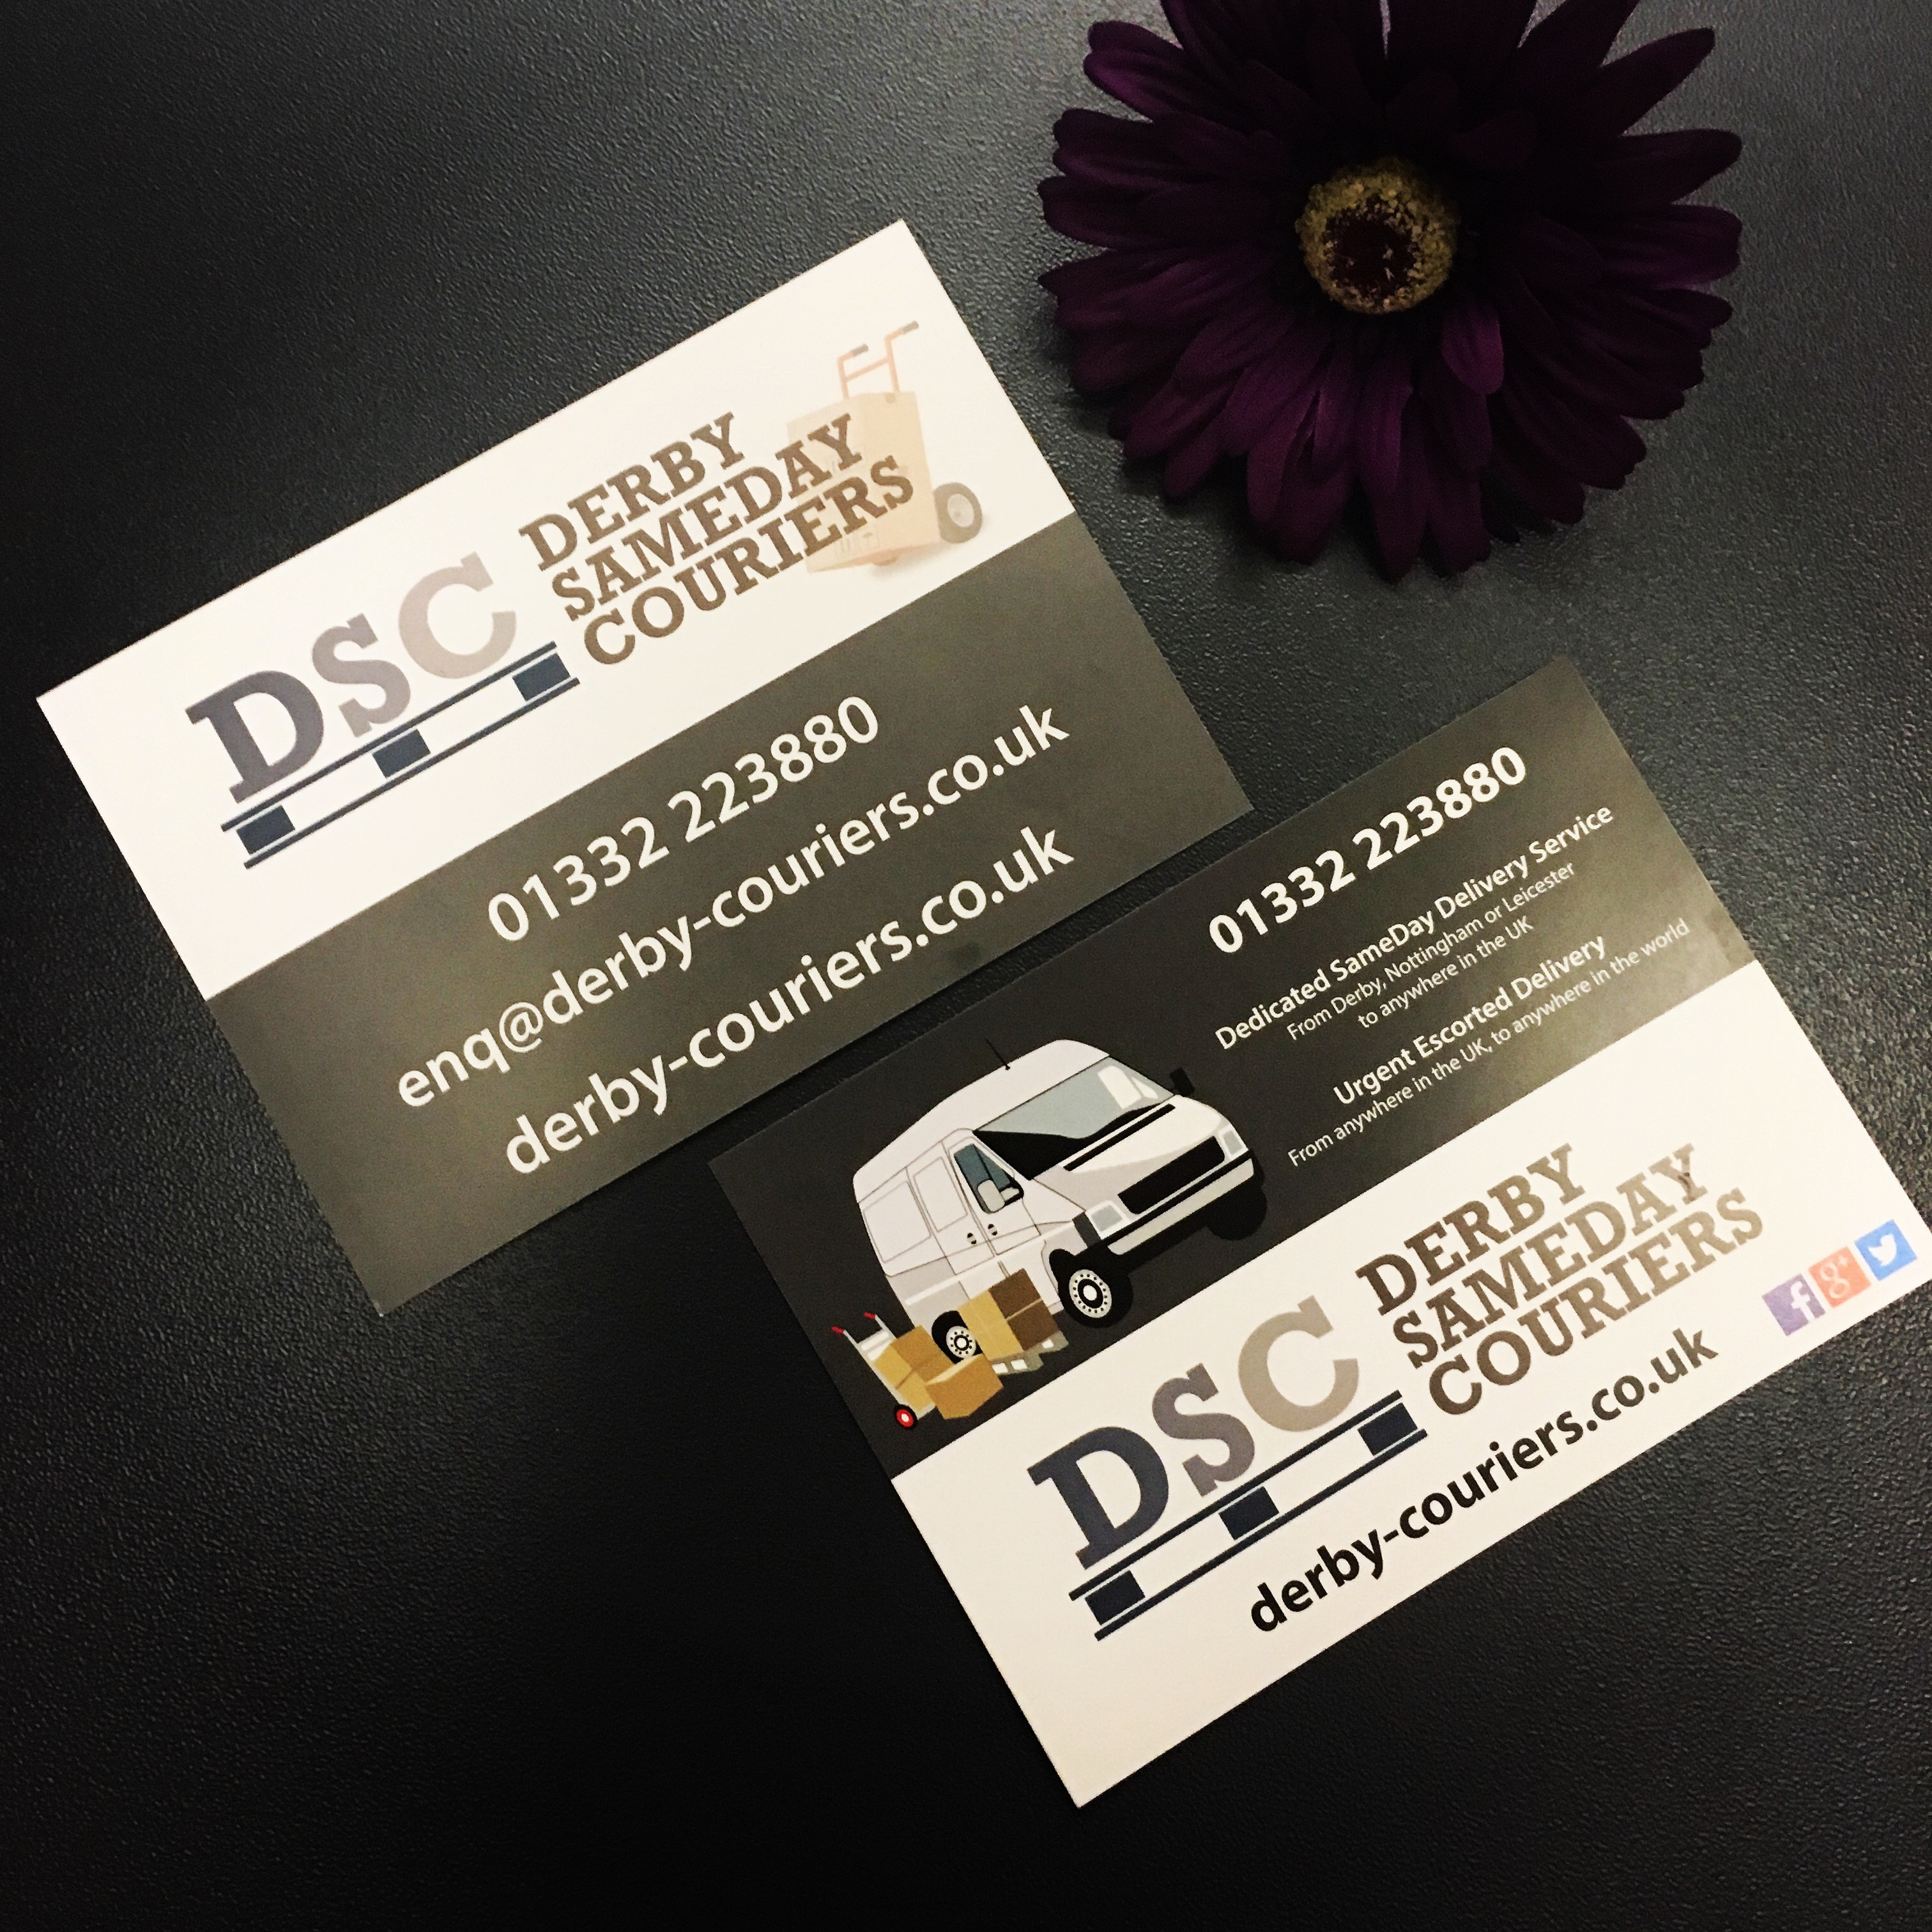 A6 Leaflets - Derby SameDay Couriers